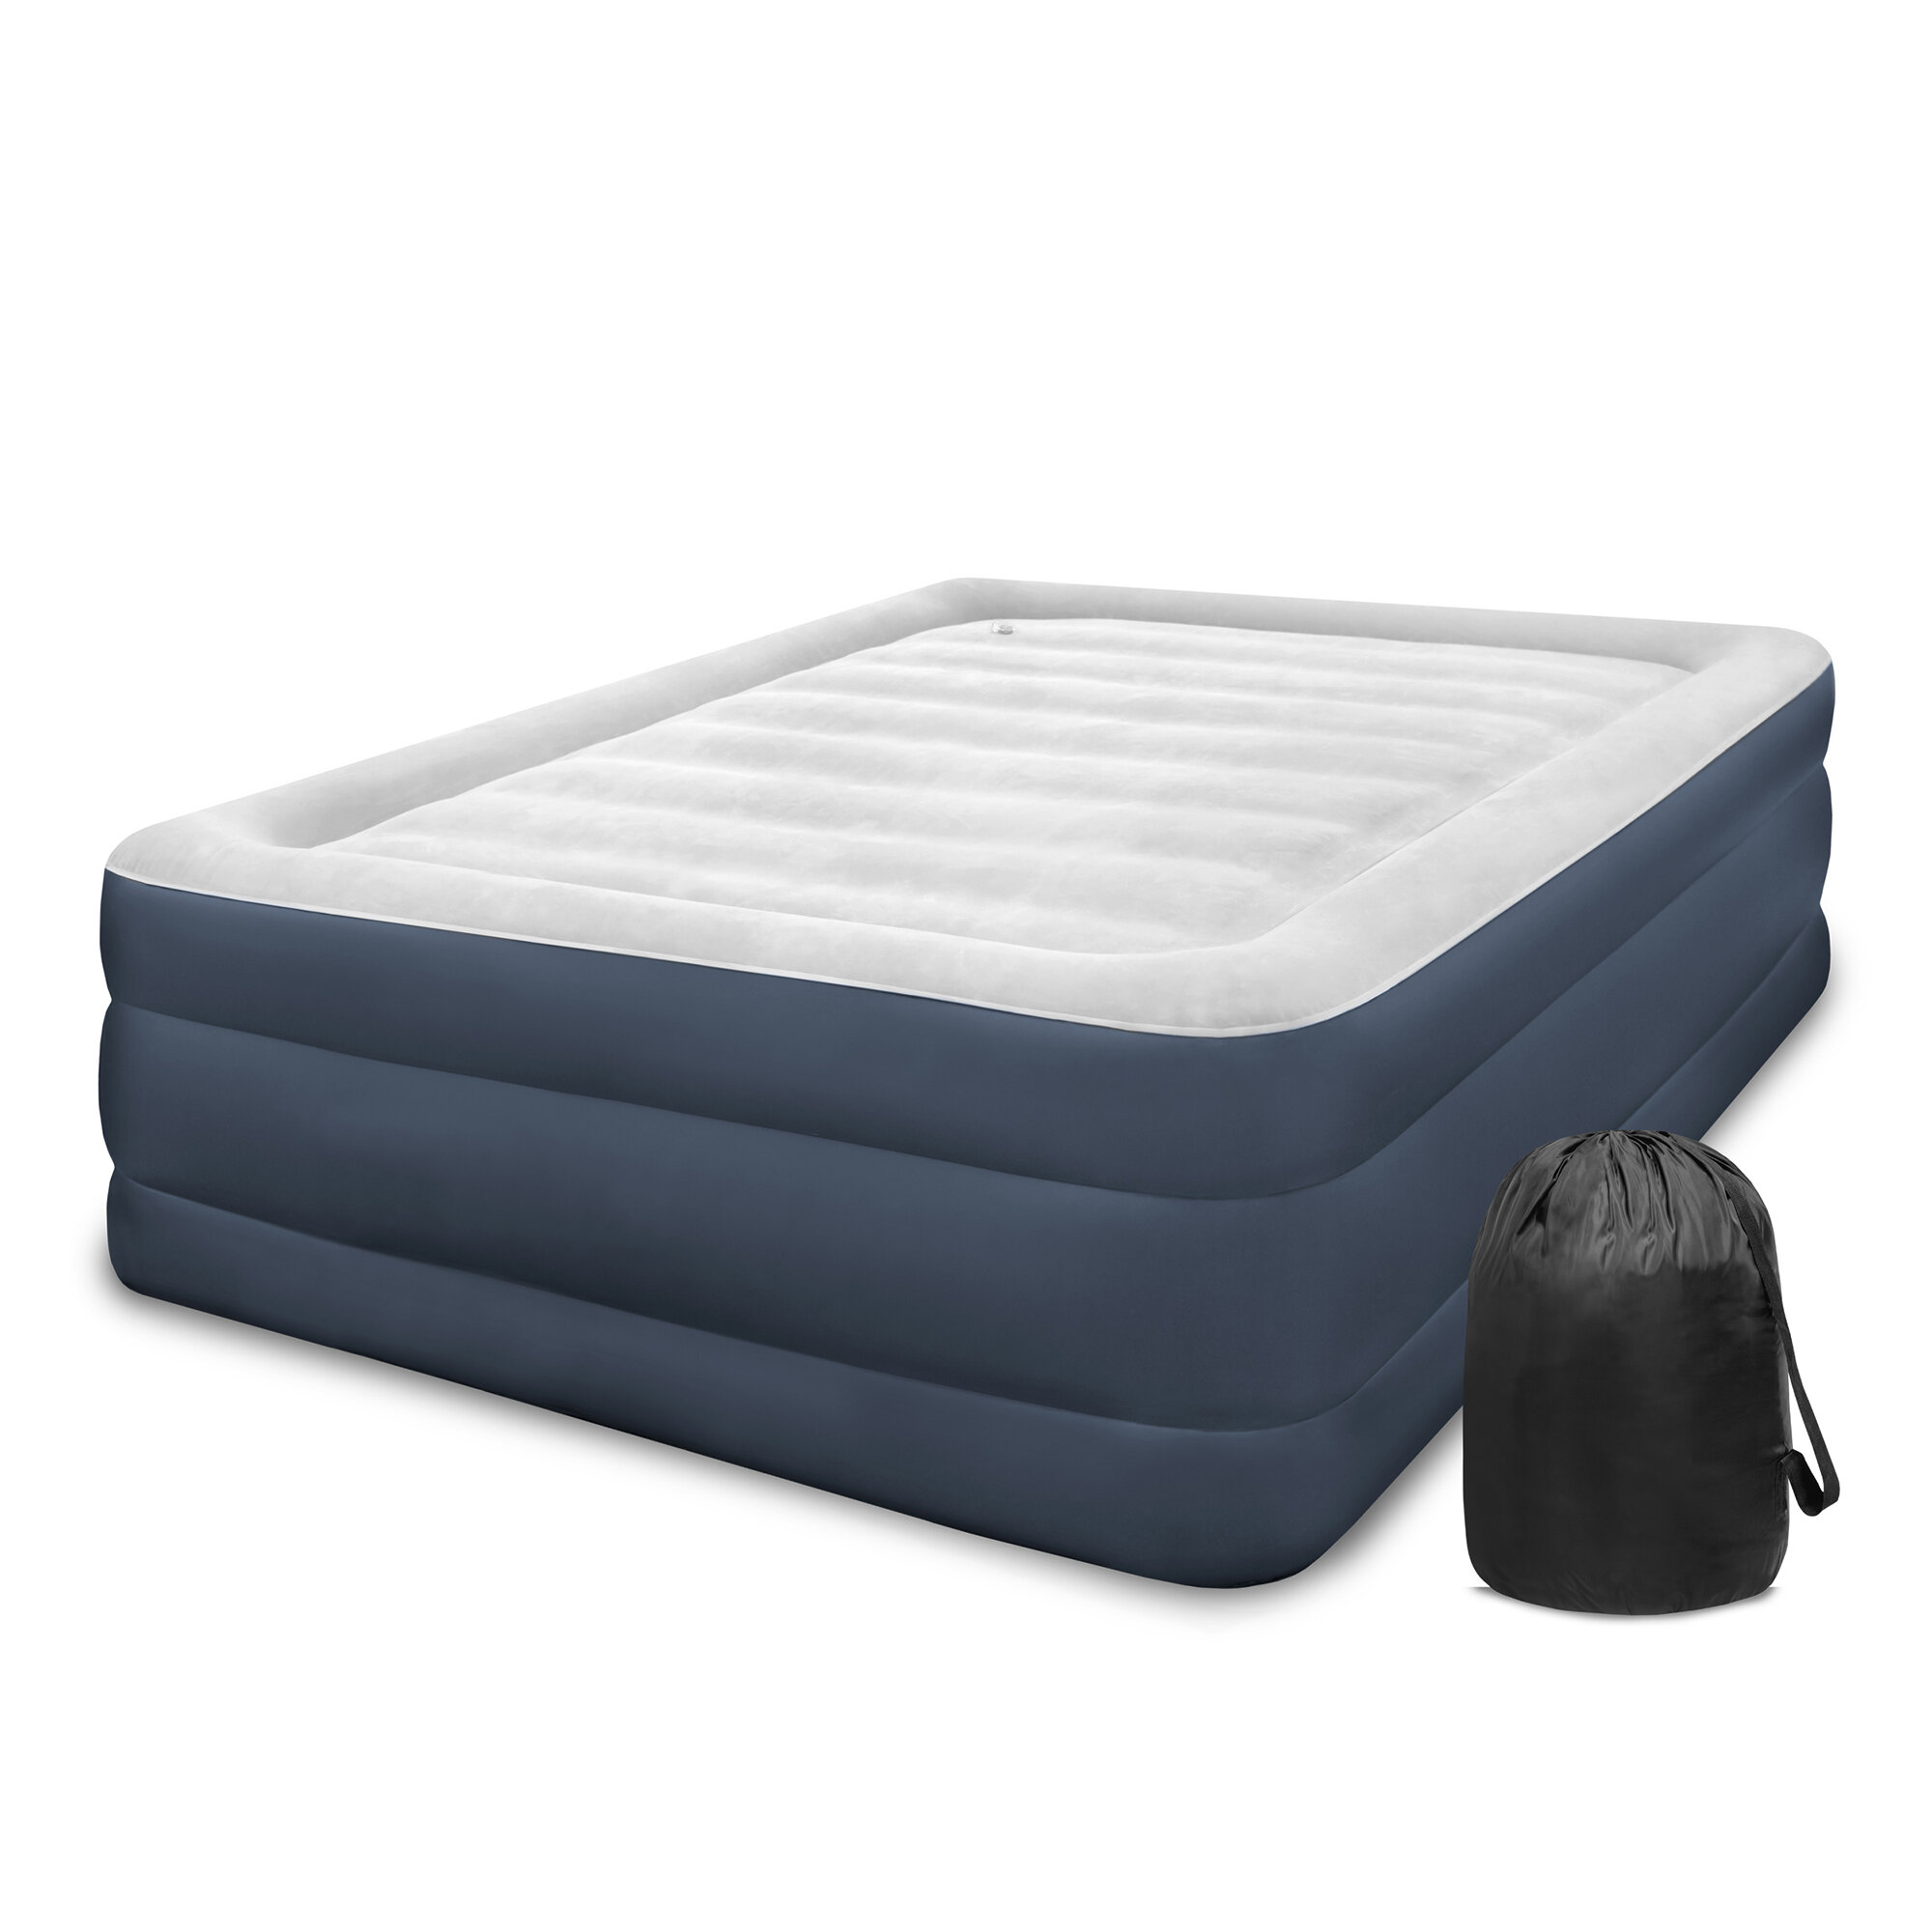 bed r pillowtop air mattress in wid hei with built queen pump aerobed